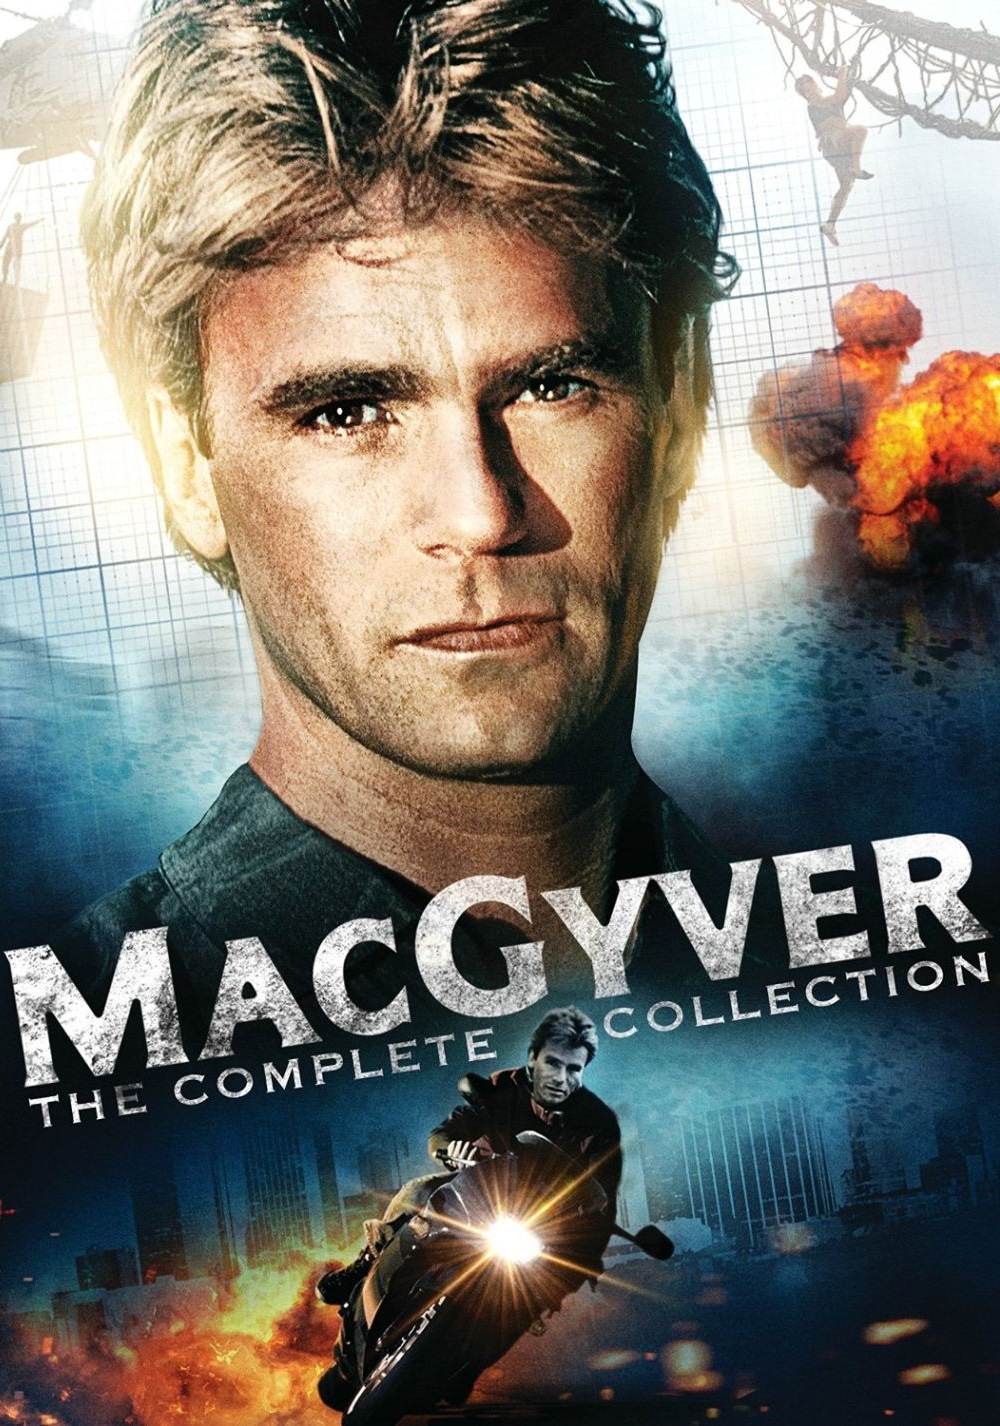 Macgyver t v series free download.